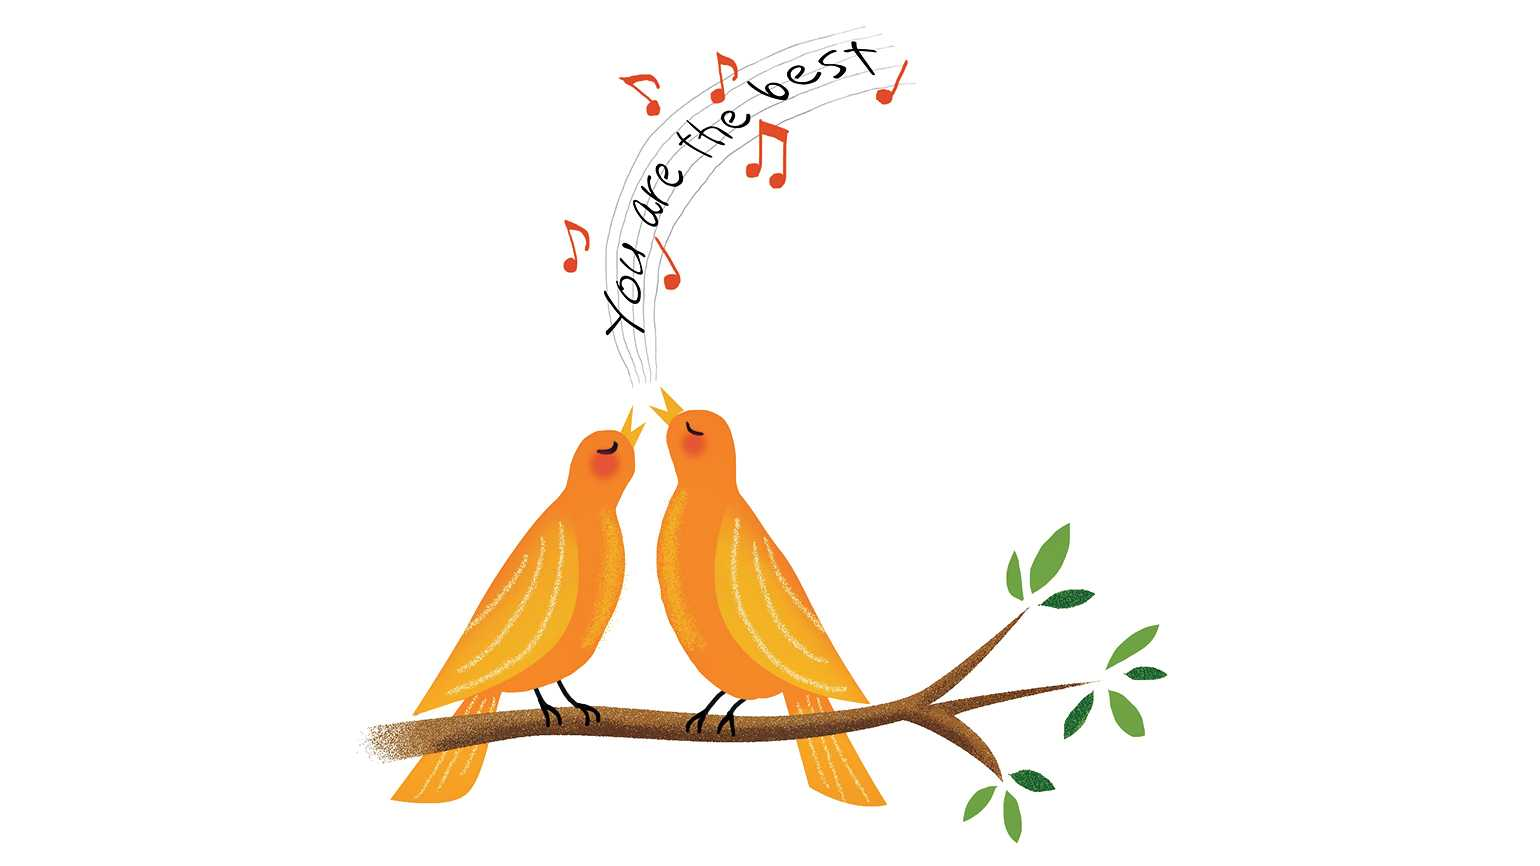 Two songbirds singing.